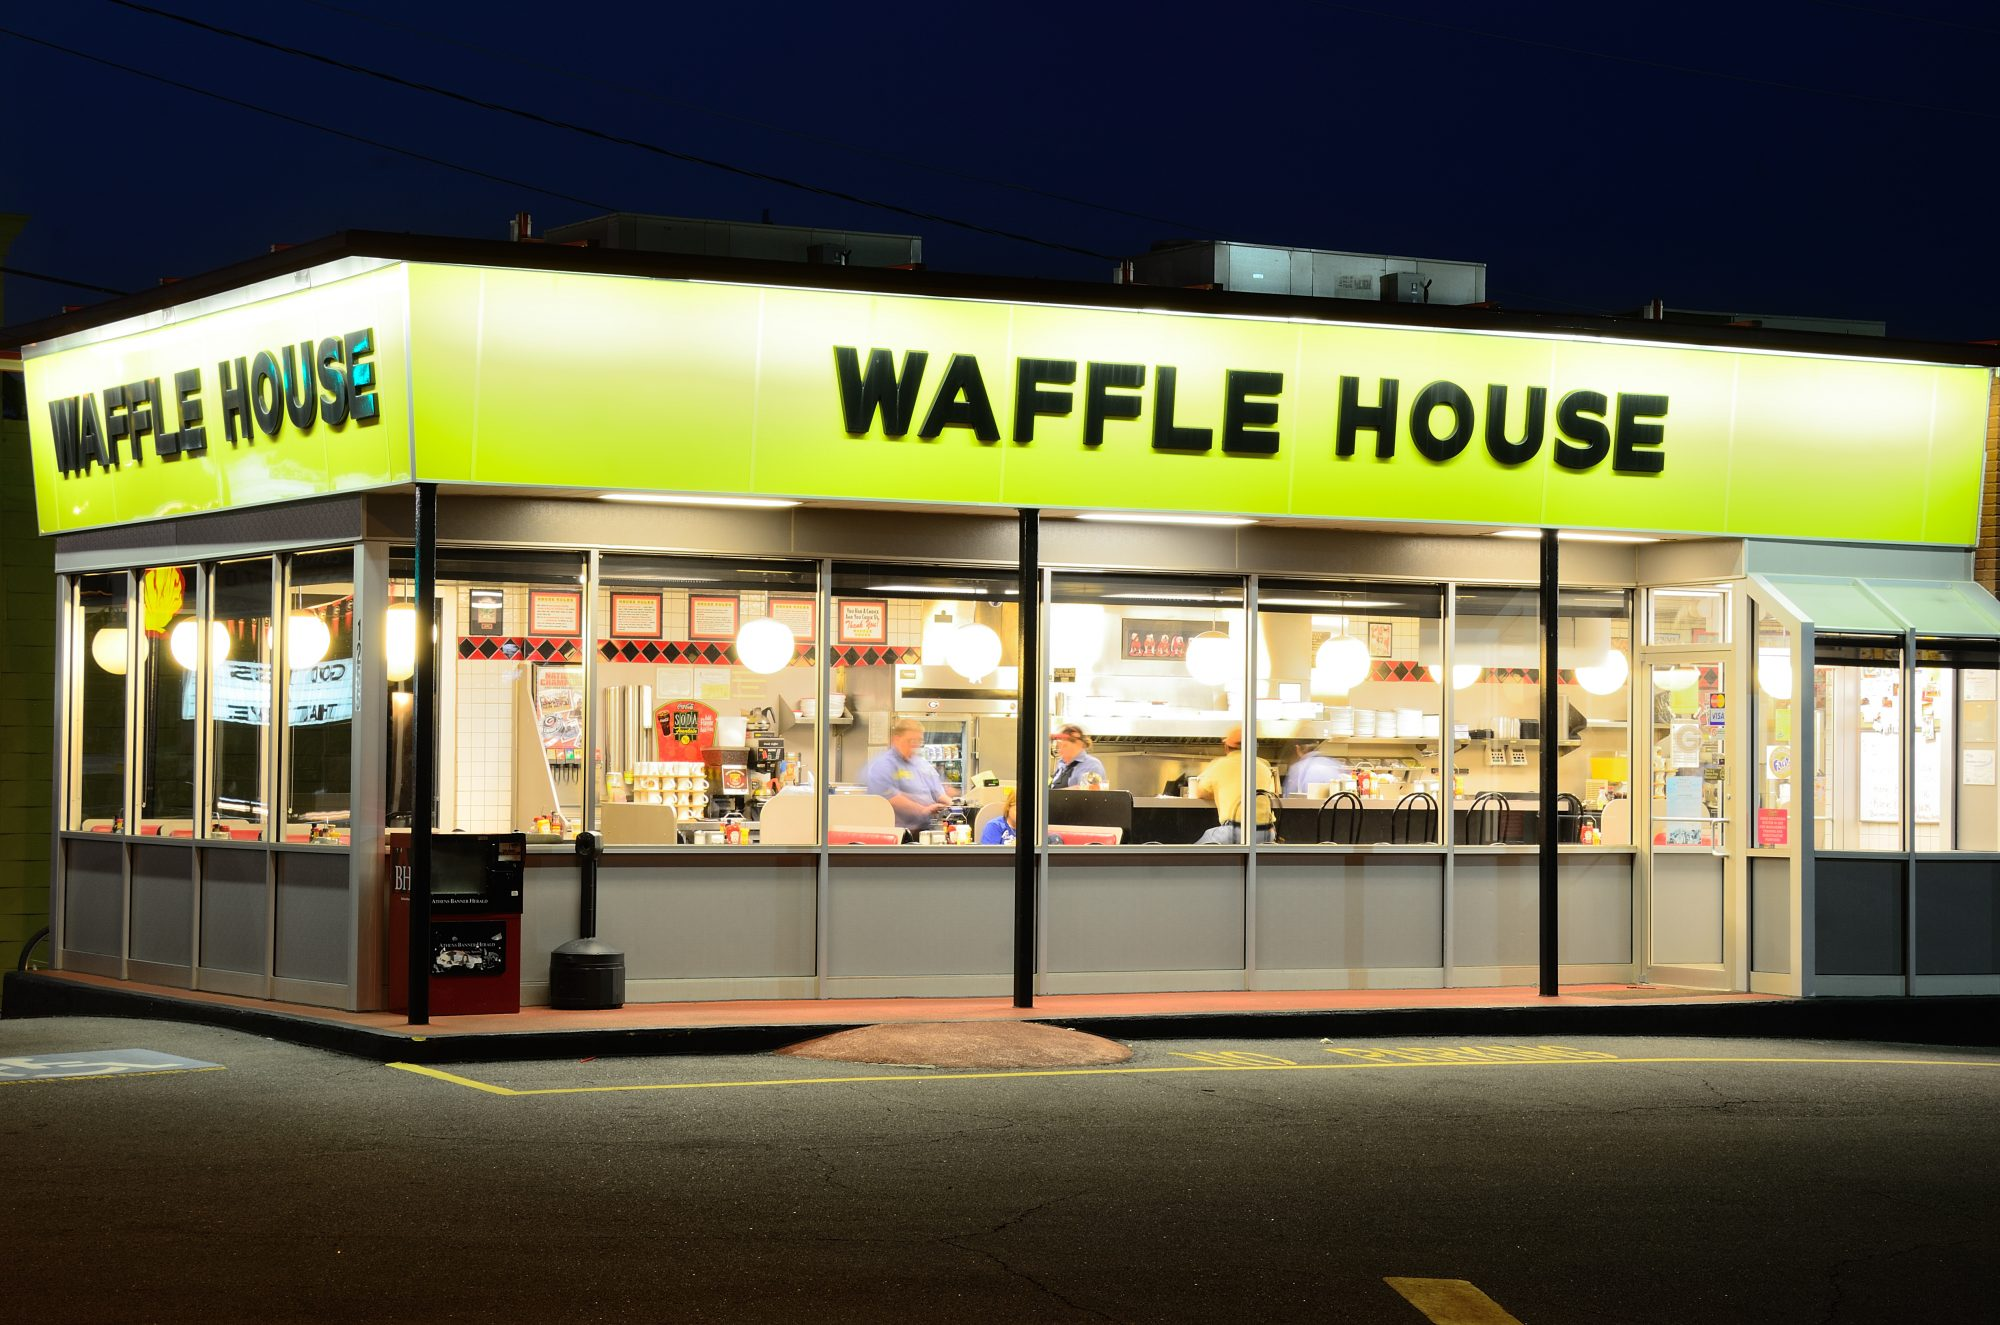 Waffle House Exterior at Night